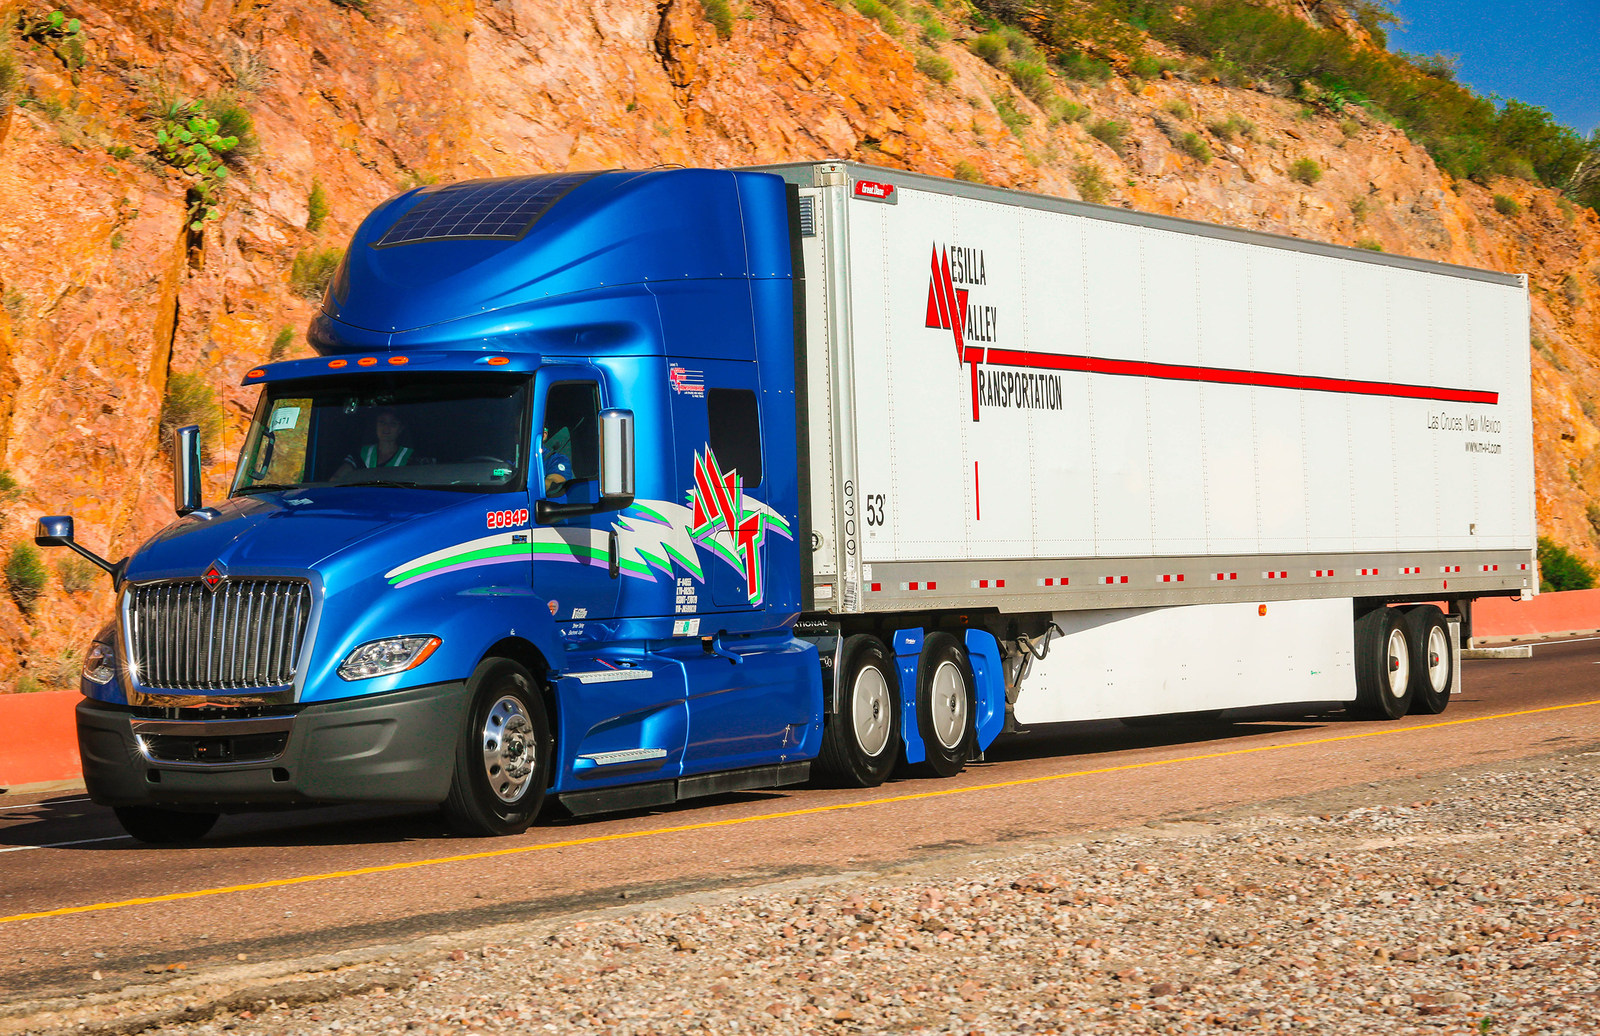 MESILLA VALLEY TRANSPORTATION, a transportation company headquartered in El Paso, Texas, has purchased close to 1,000 auxiliary solar-power systems for its fleet of Navistar trucks from Warwick-based renewable-energy company eNow. /COURTESY MESILLA VALLEY TRANSPORTATION